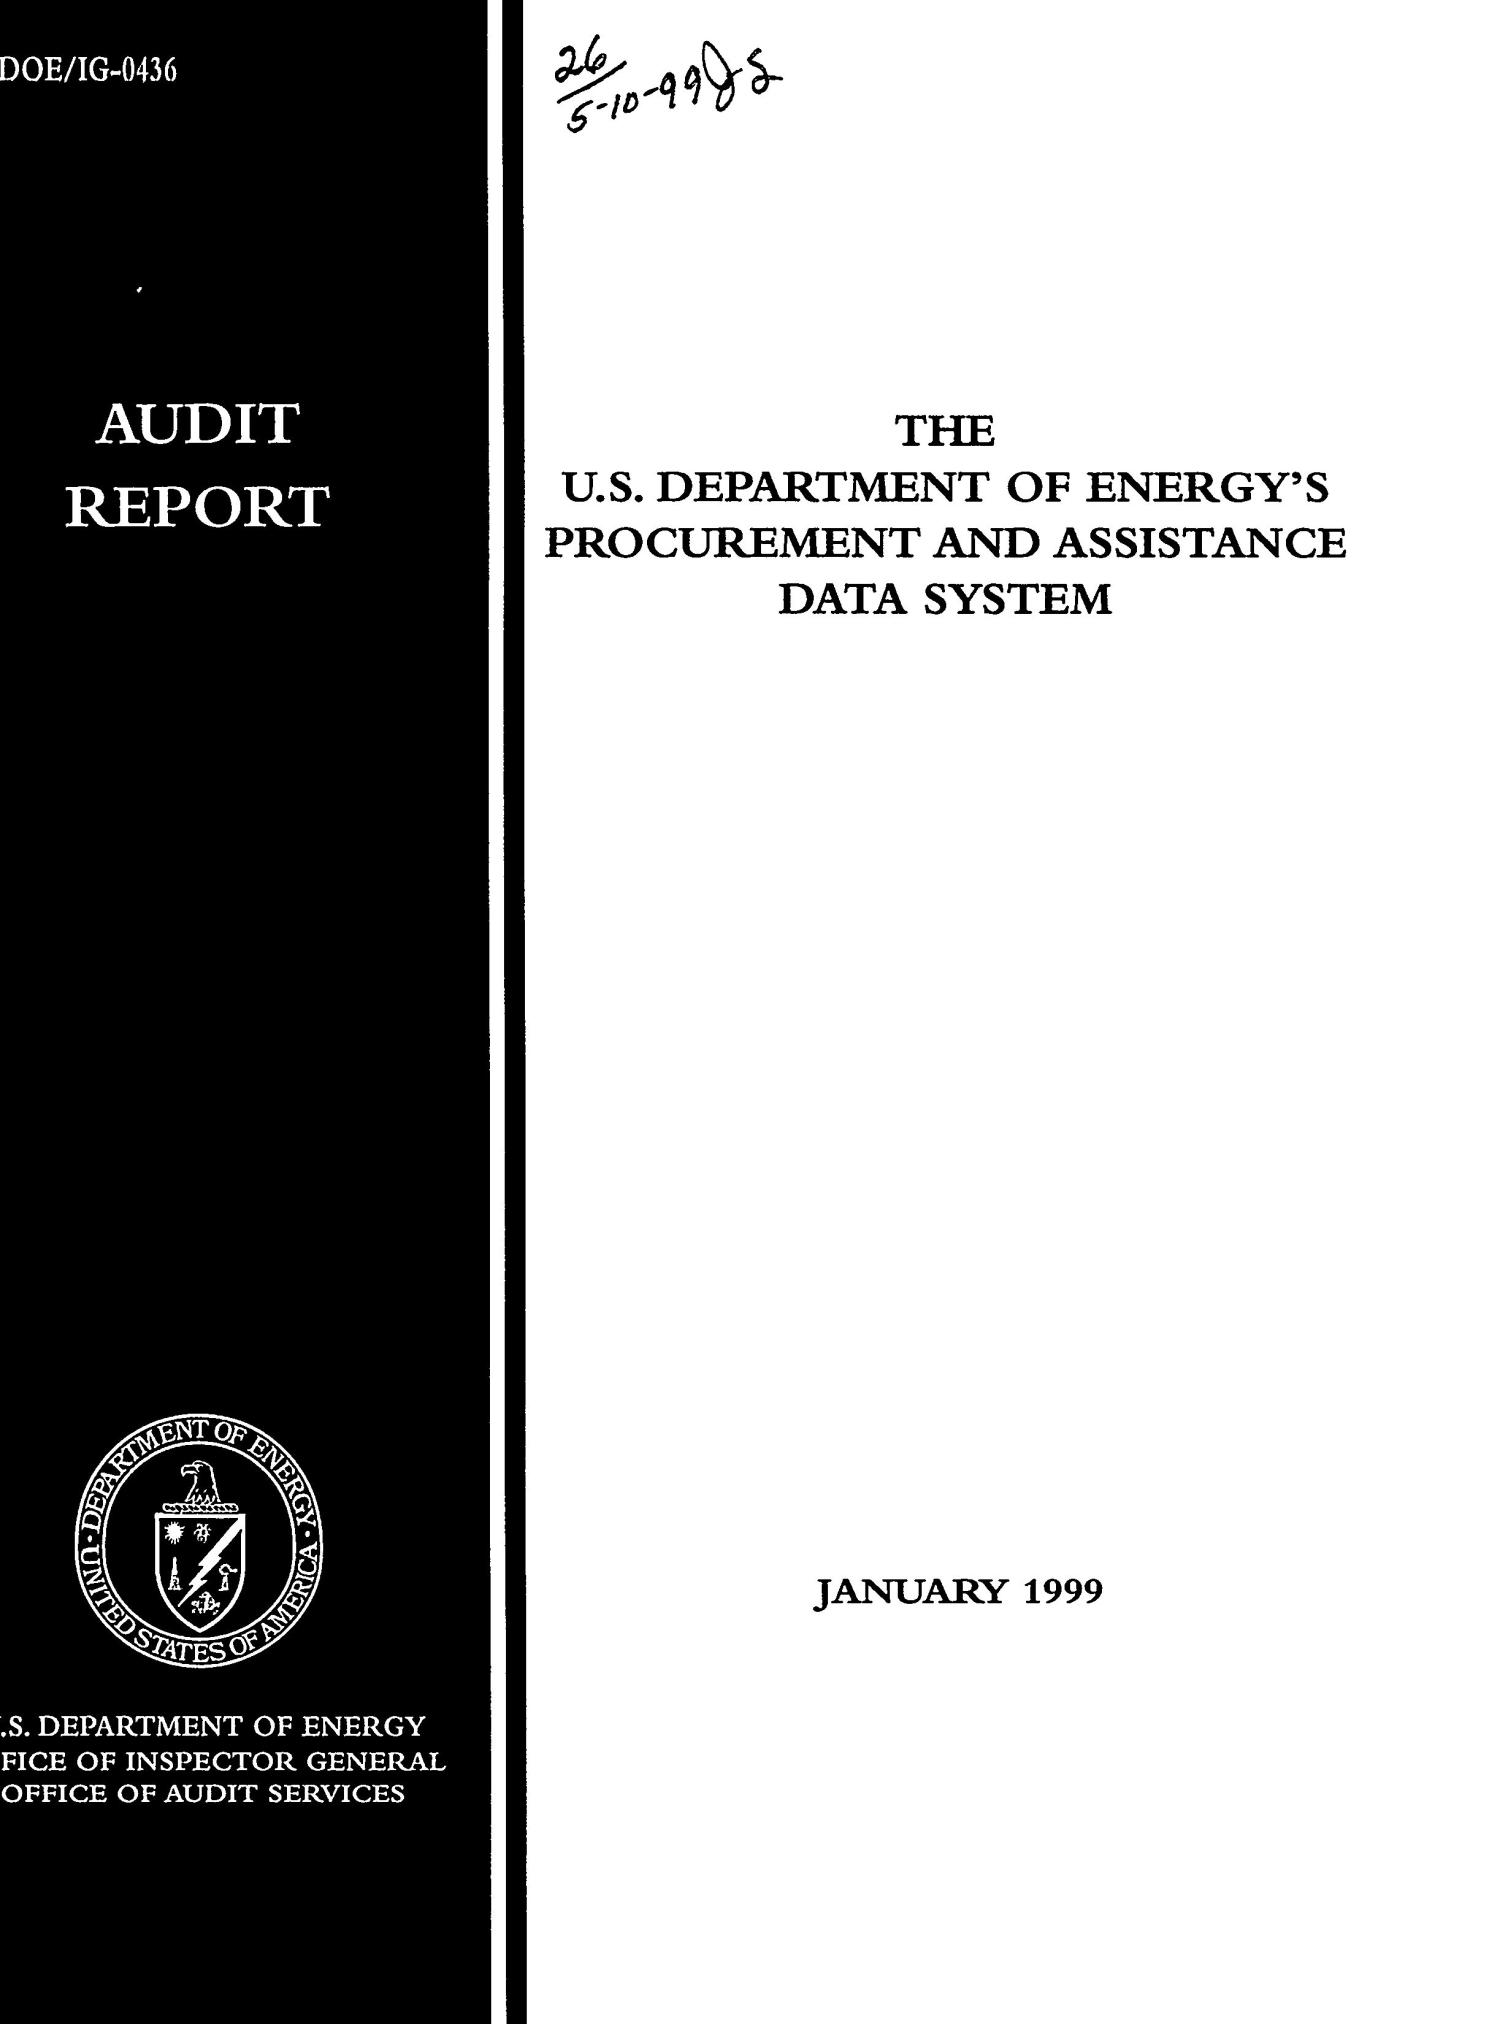 Audit report: the US Department of Energy's procurement and assistance data system                                                                                                      [Sequence #]: 1 of 17